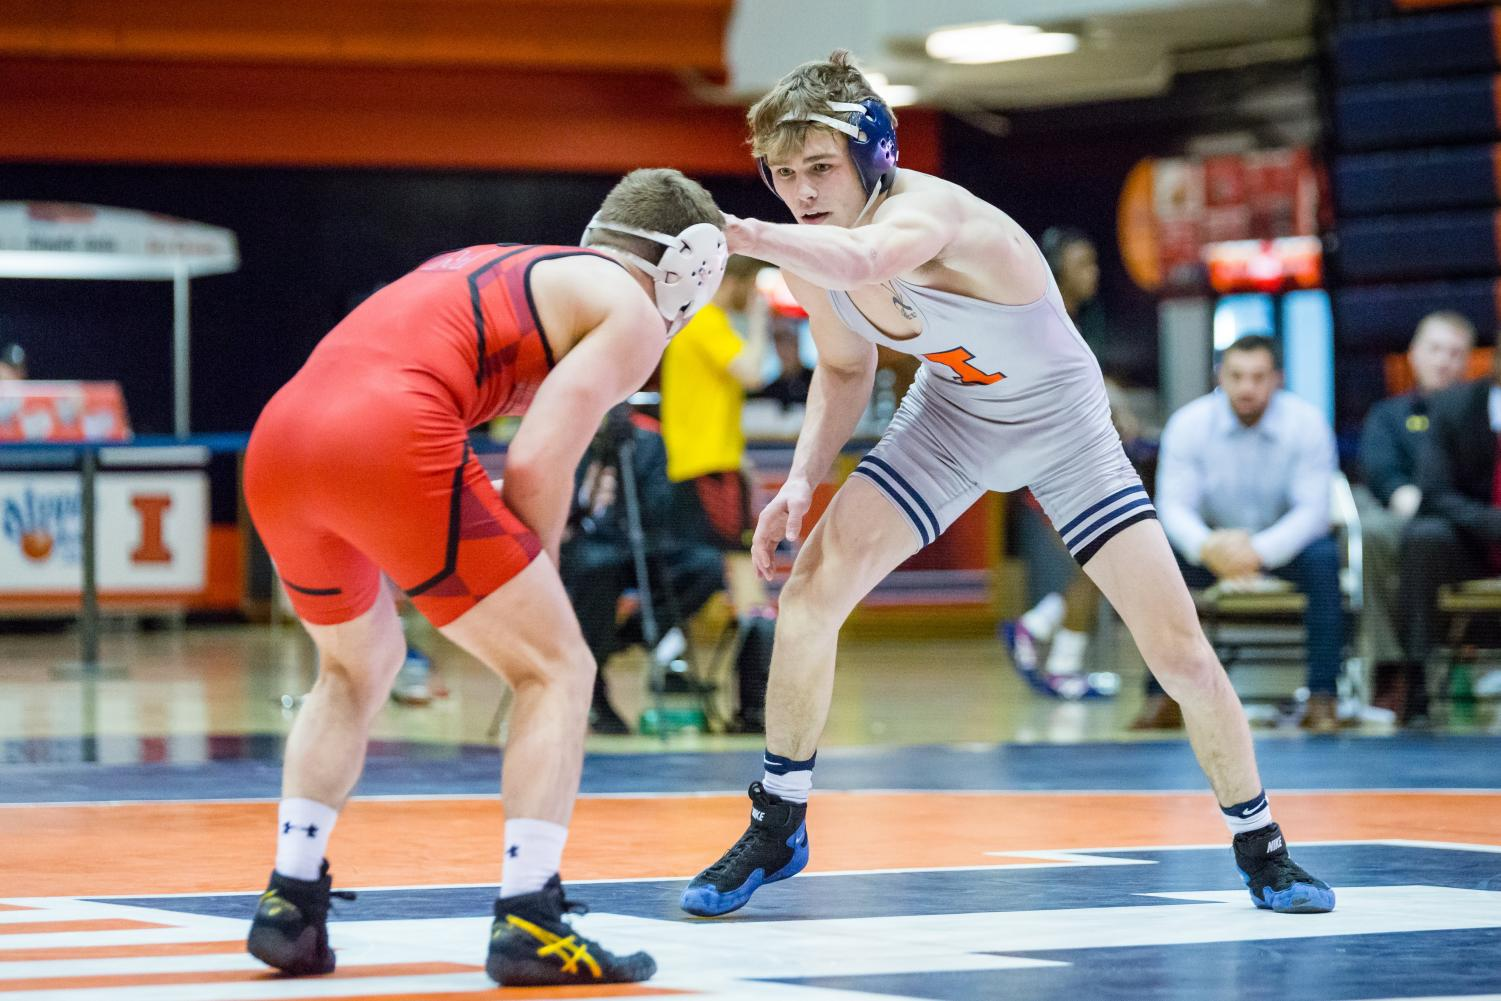 Illinois' Travis Piotrowski wrestles with Maryland's Brandon Cray in the 125-pound weight class during the meet at Huff Hall on Jan. 28. The Illini won 25-18.